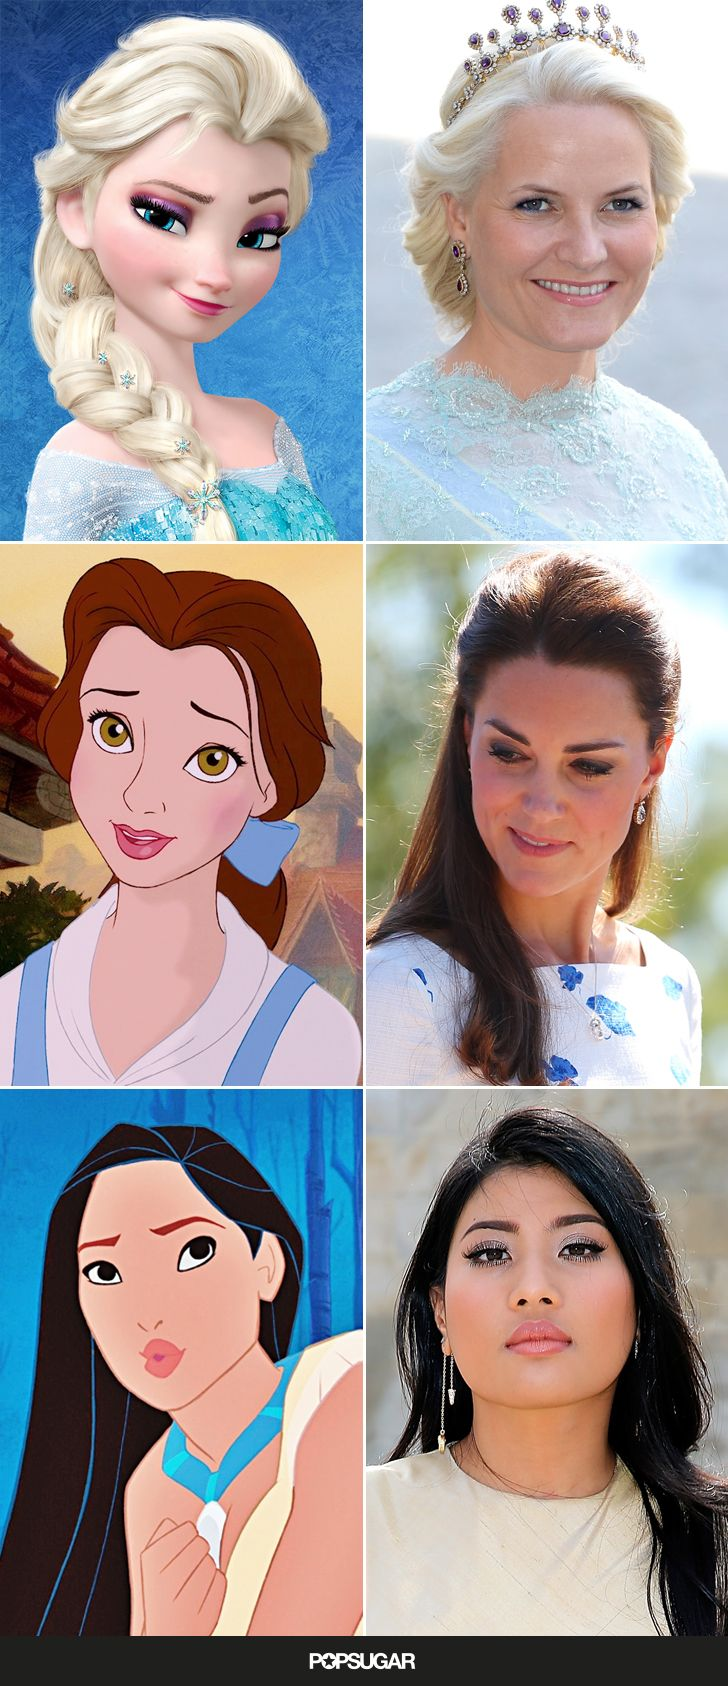 These real-life royals remind us so much of their Disney character lookalikes!